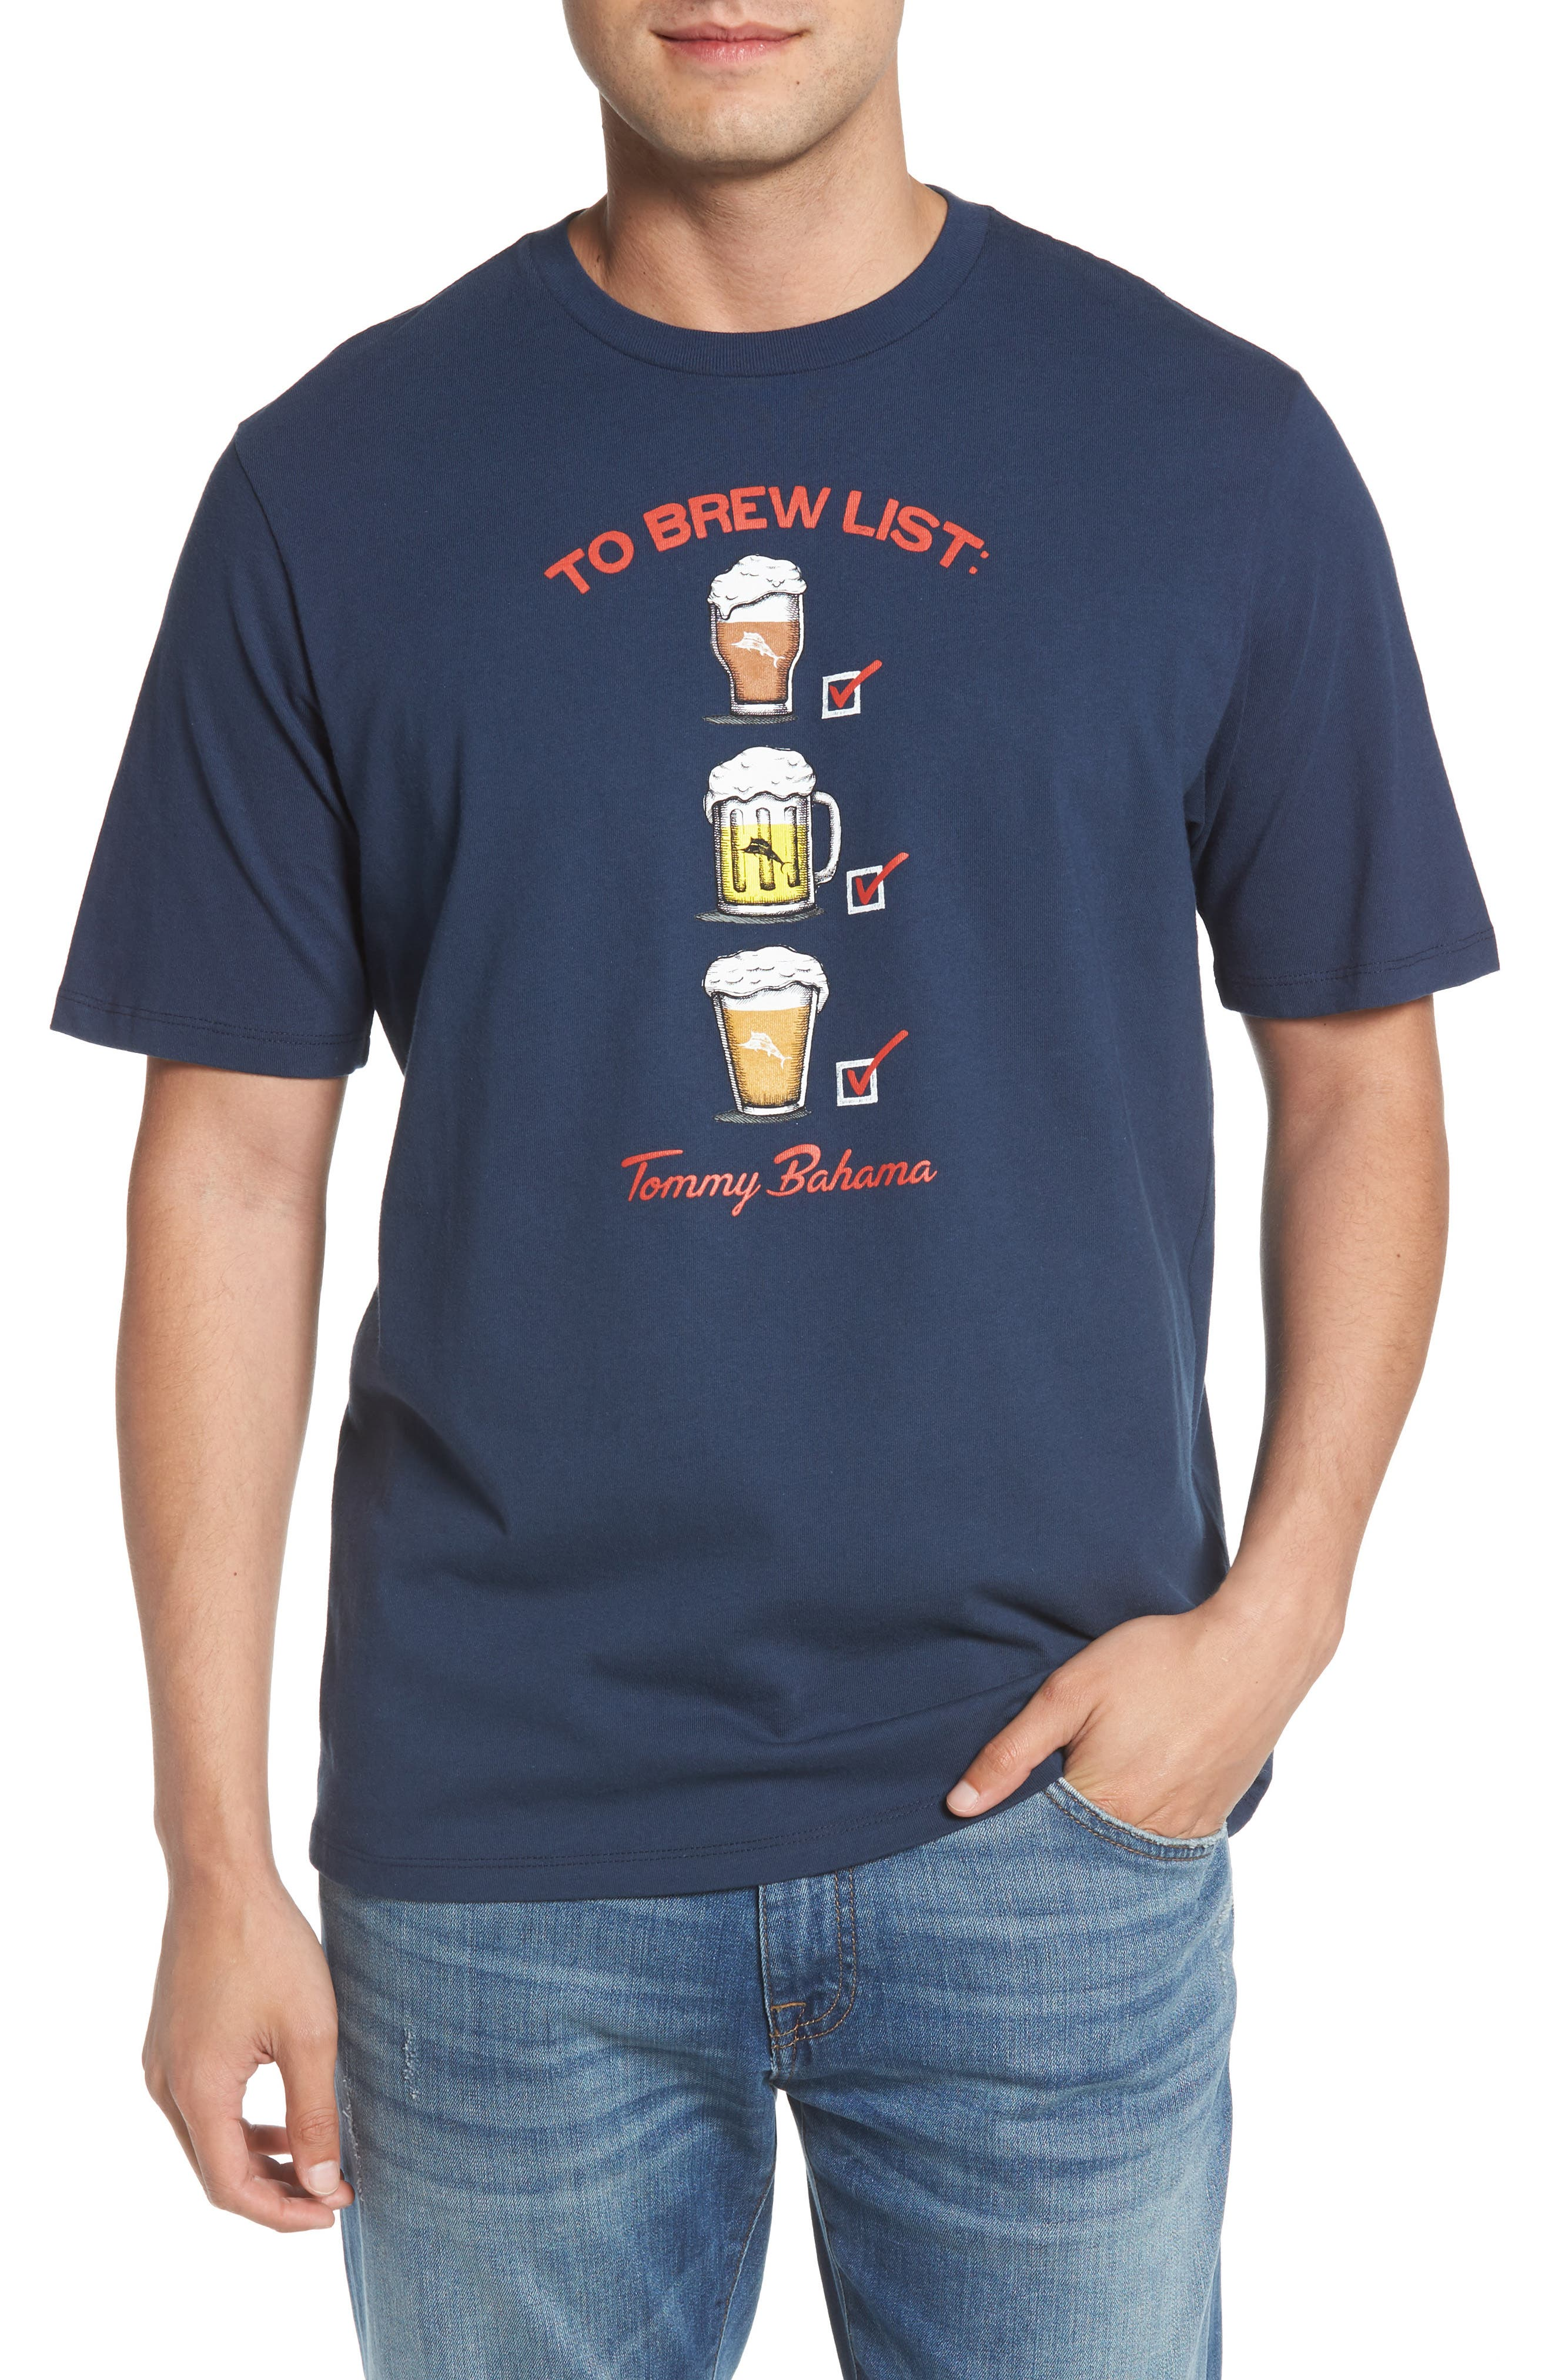 Tommy Bahama To Brew List T-Shirt